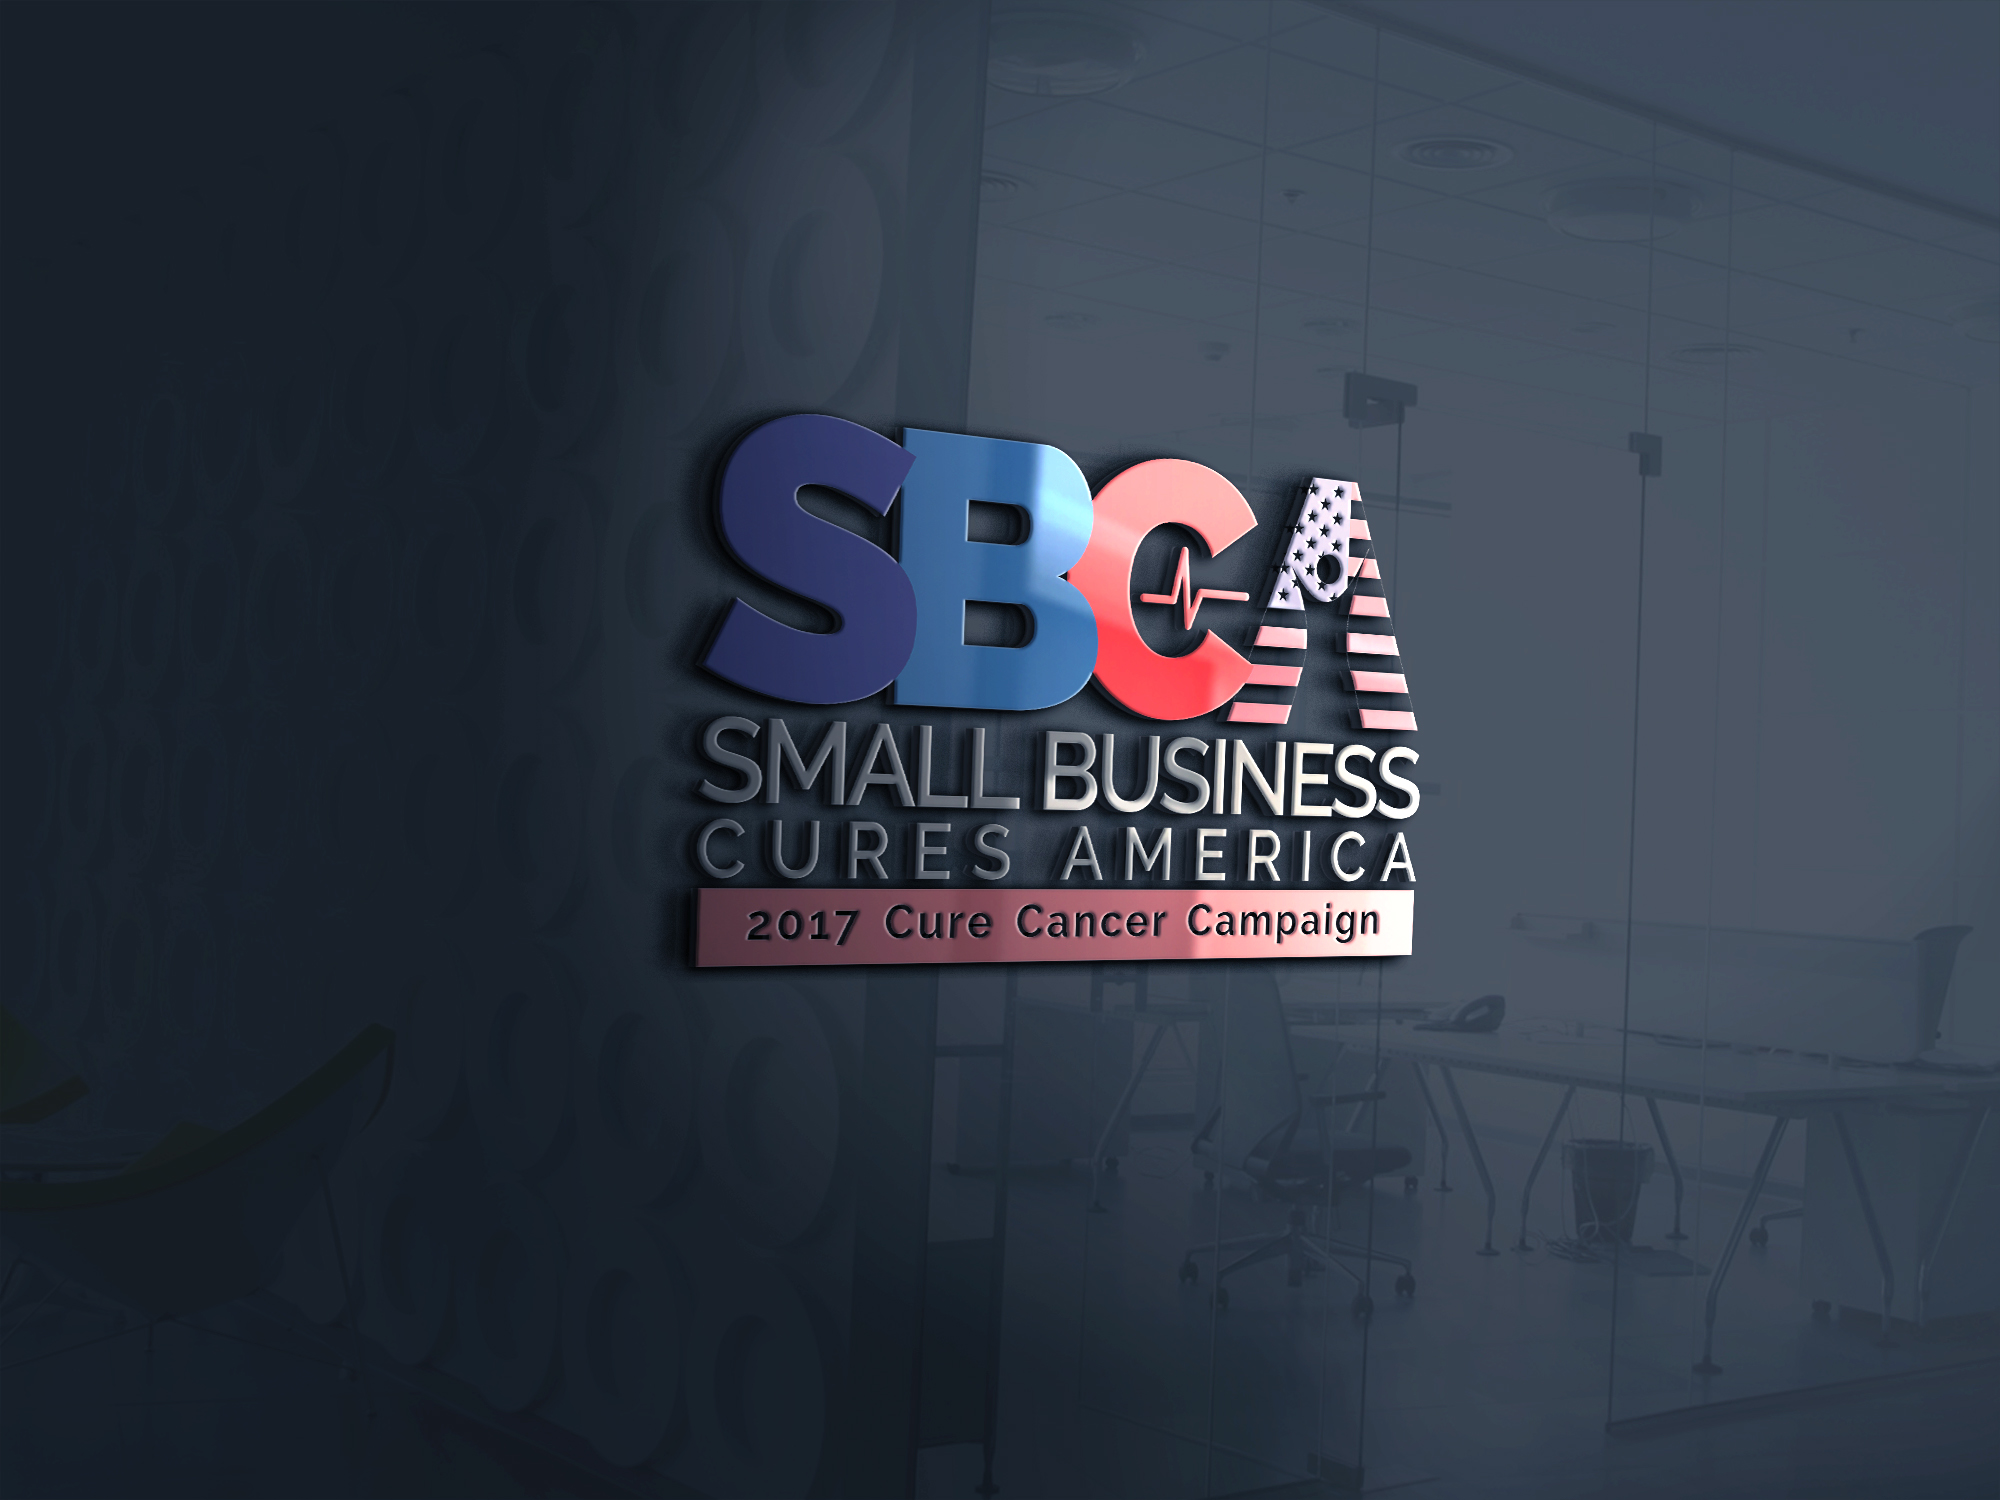 Small Business Cures America Offices